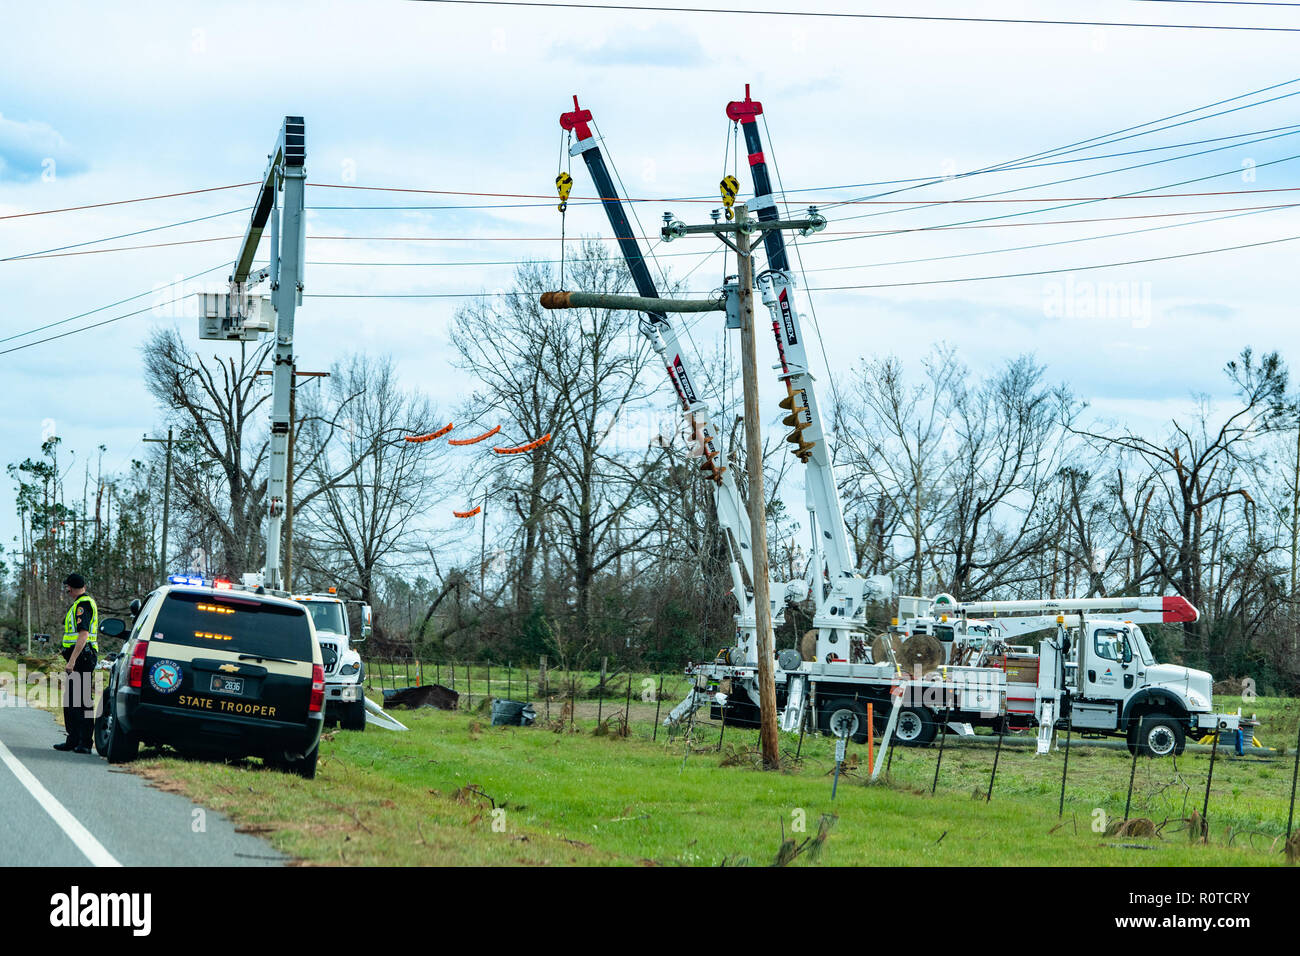 Altha, FL., Oct. 22, 2018--Linesmen work to restore power in the Florida Panhandle after Hurricane Michael struck on October 10, as a Category 4 hurricane, packing 155 mph winds. FEMA/K.C. Wilsey Stock Photo